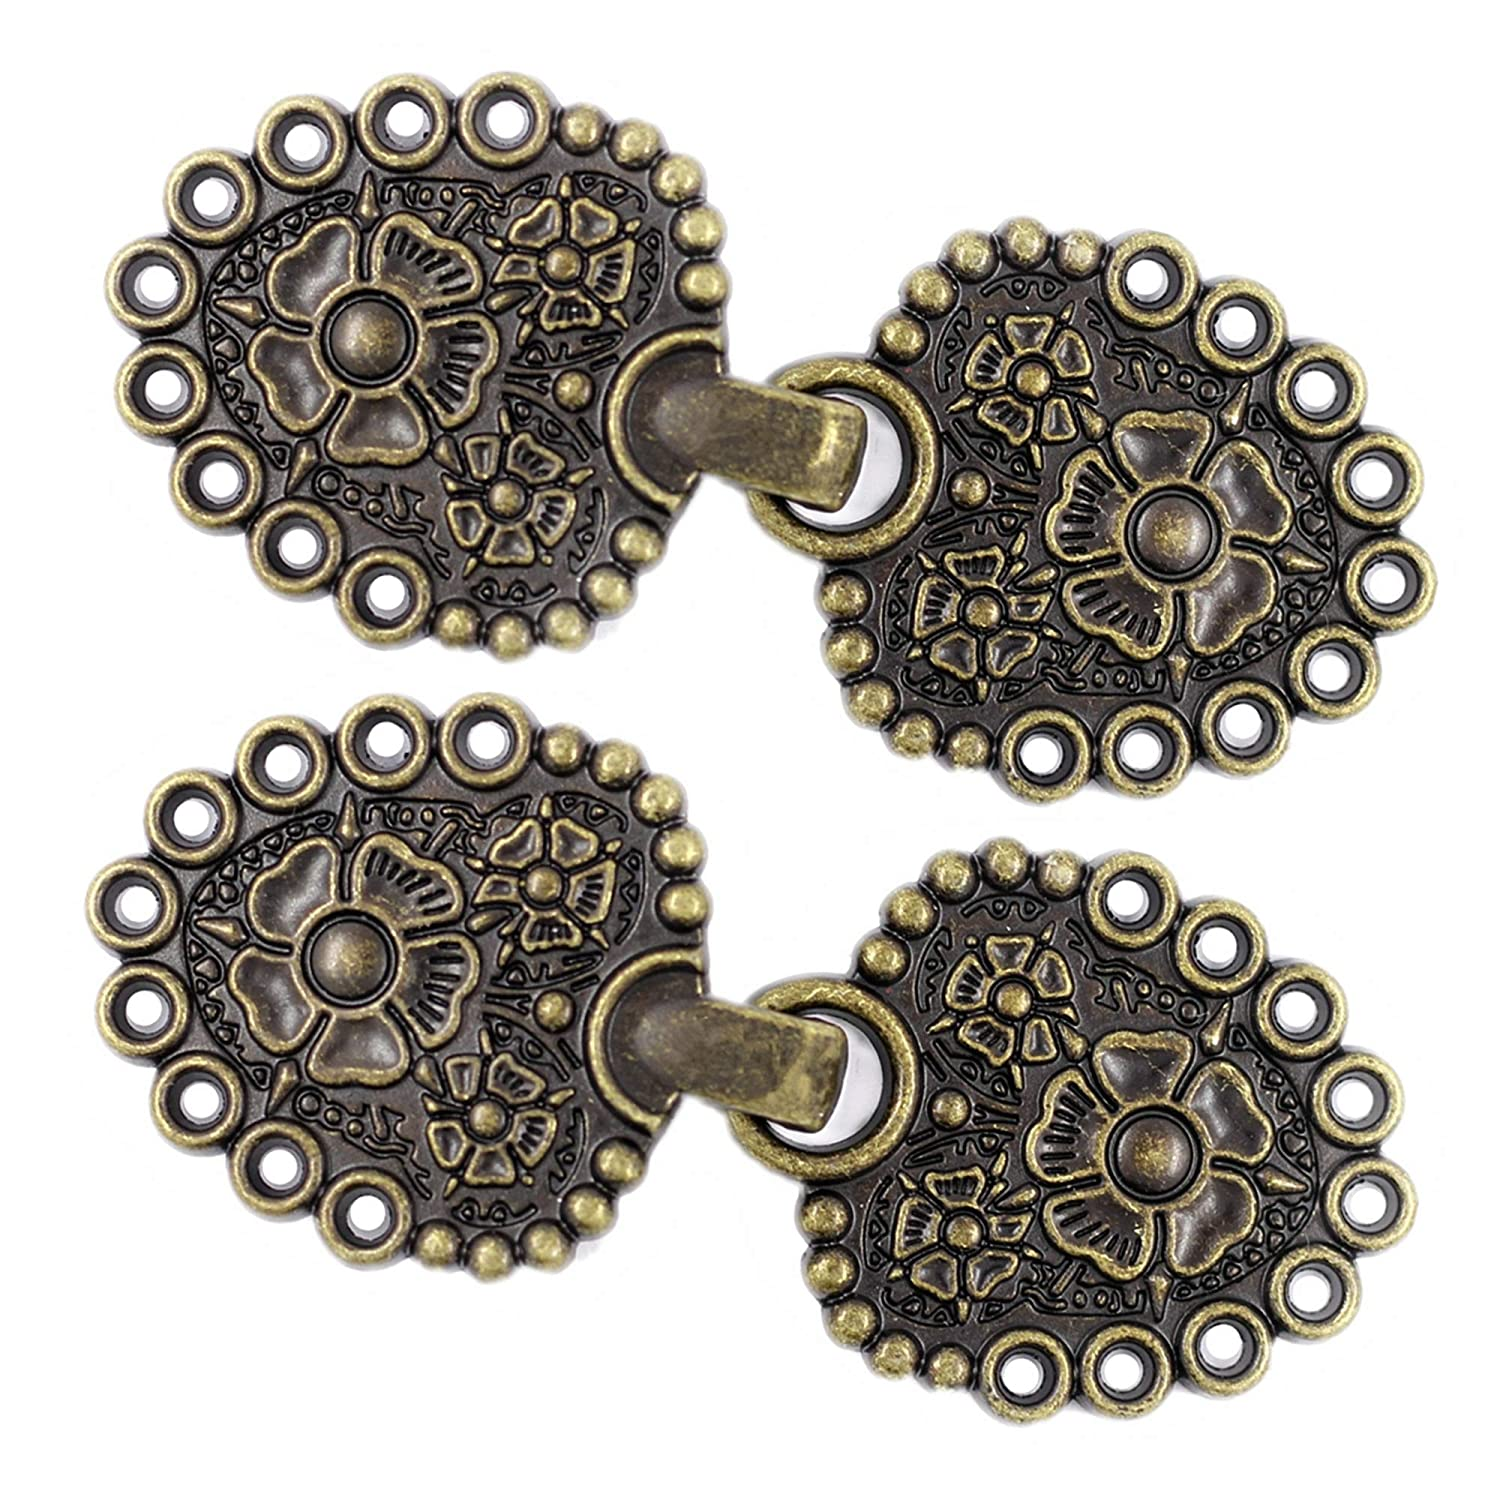 Bezelry Romantic Bouquet Cape or Cloak Clasp Fasteners Antique Brass Pack of 4 Pairs 62mm x 25mm Fastened Sew On Hooks and Eyes Cardigan Clip.